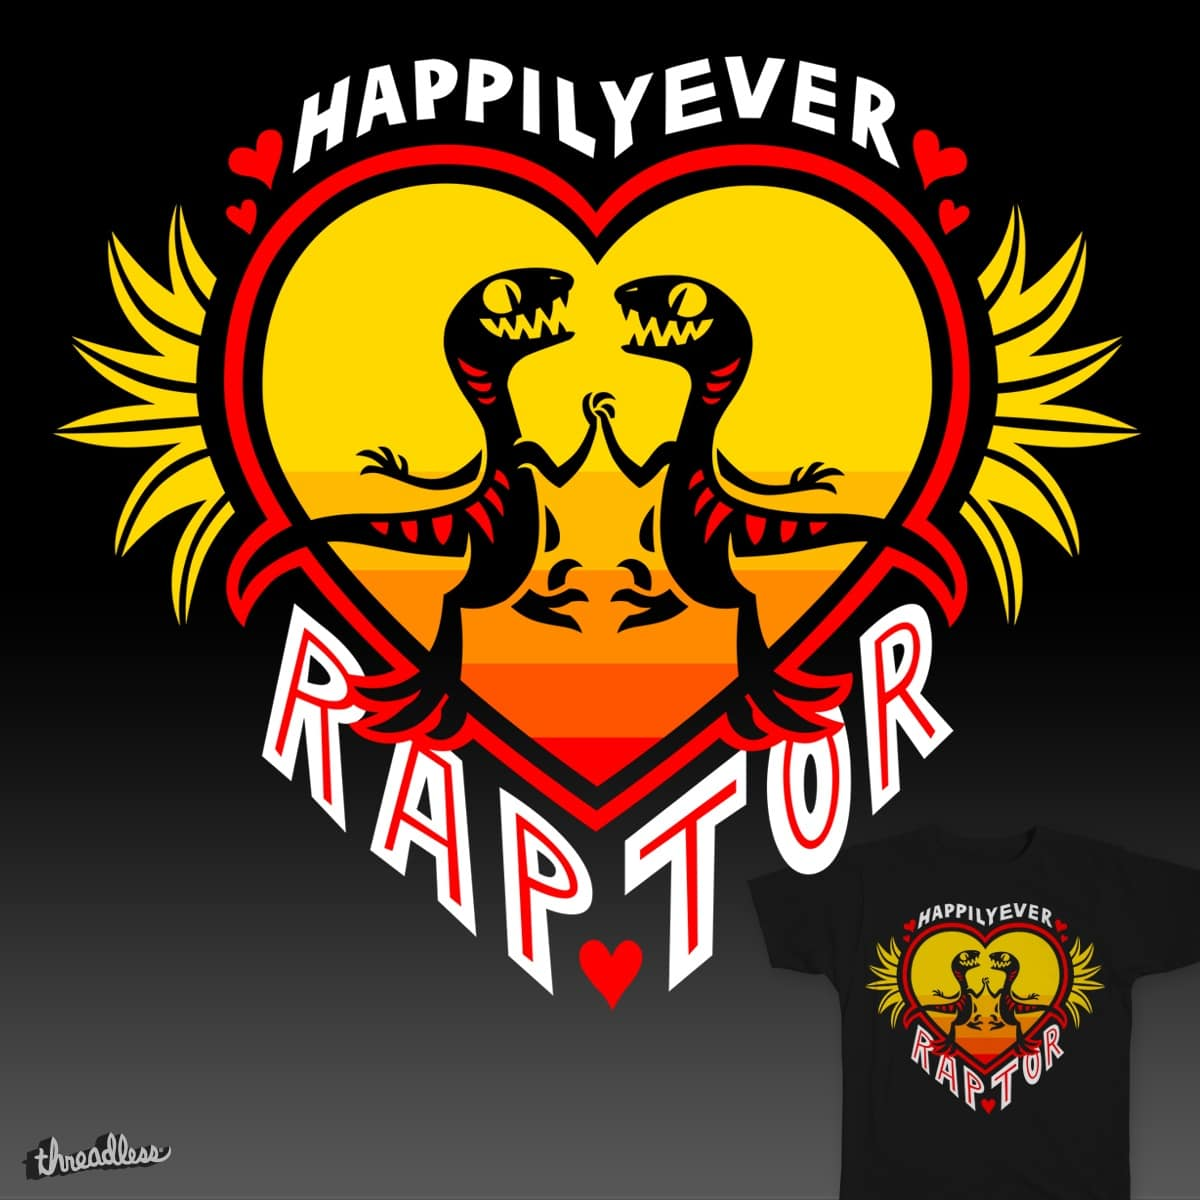 Happily Ever Raptor by Versiris on Threadless